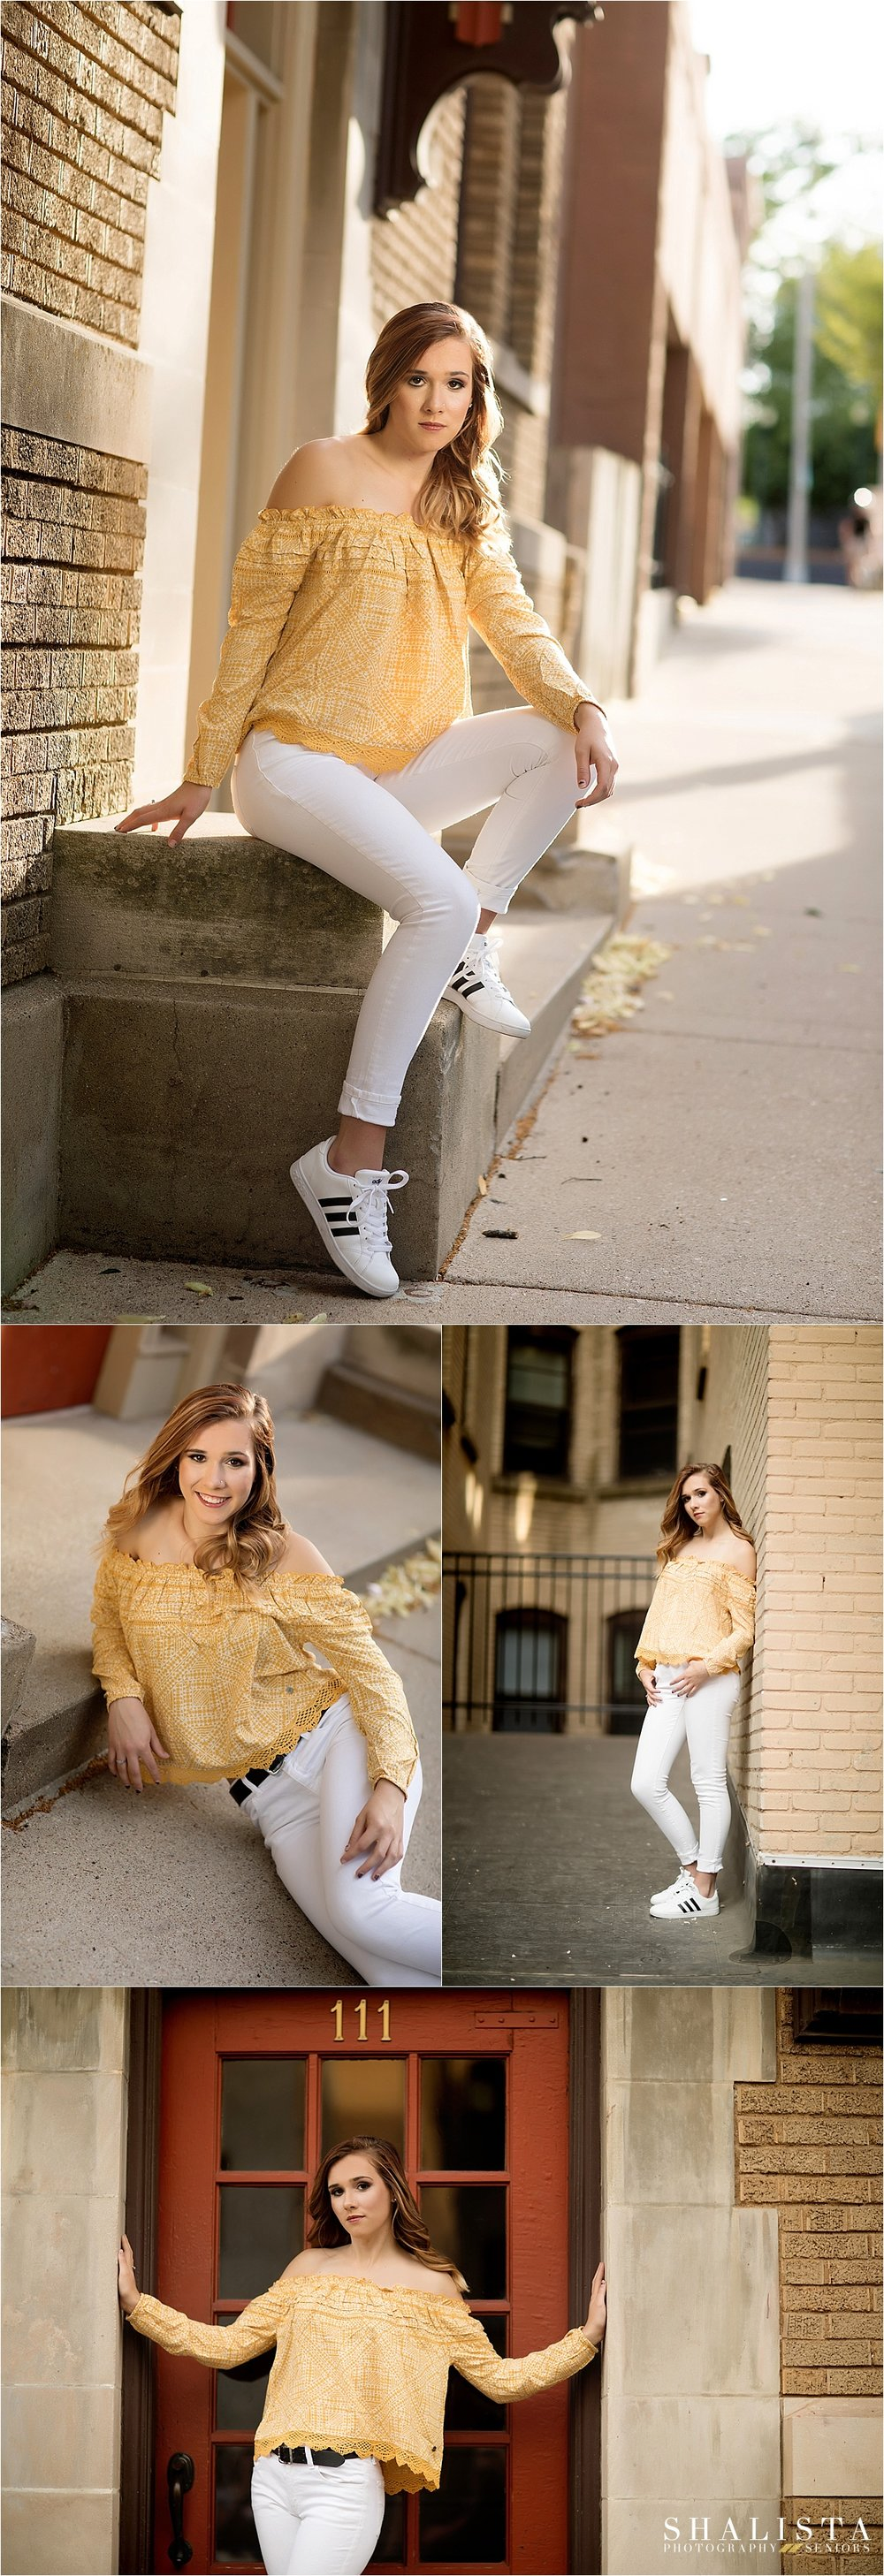 Downtown Sioux Falls Senior Portraits